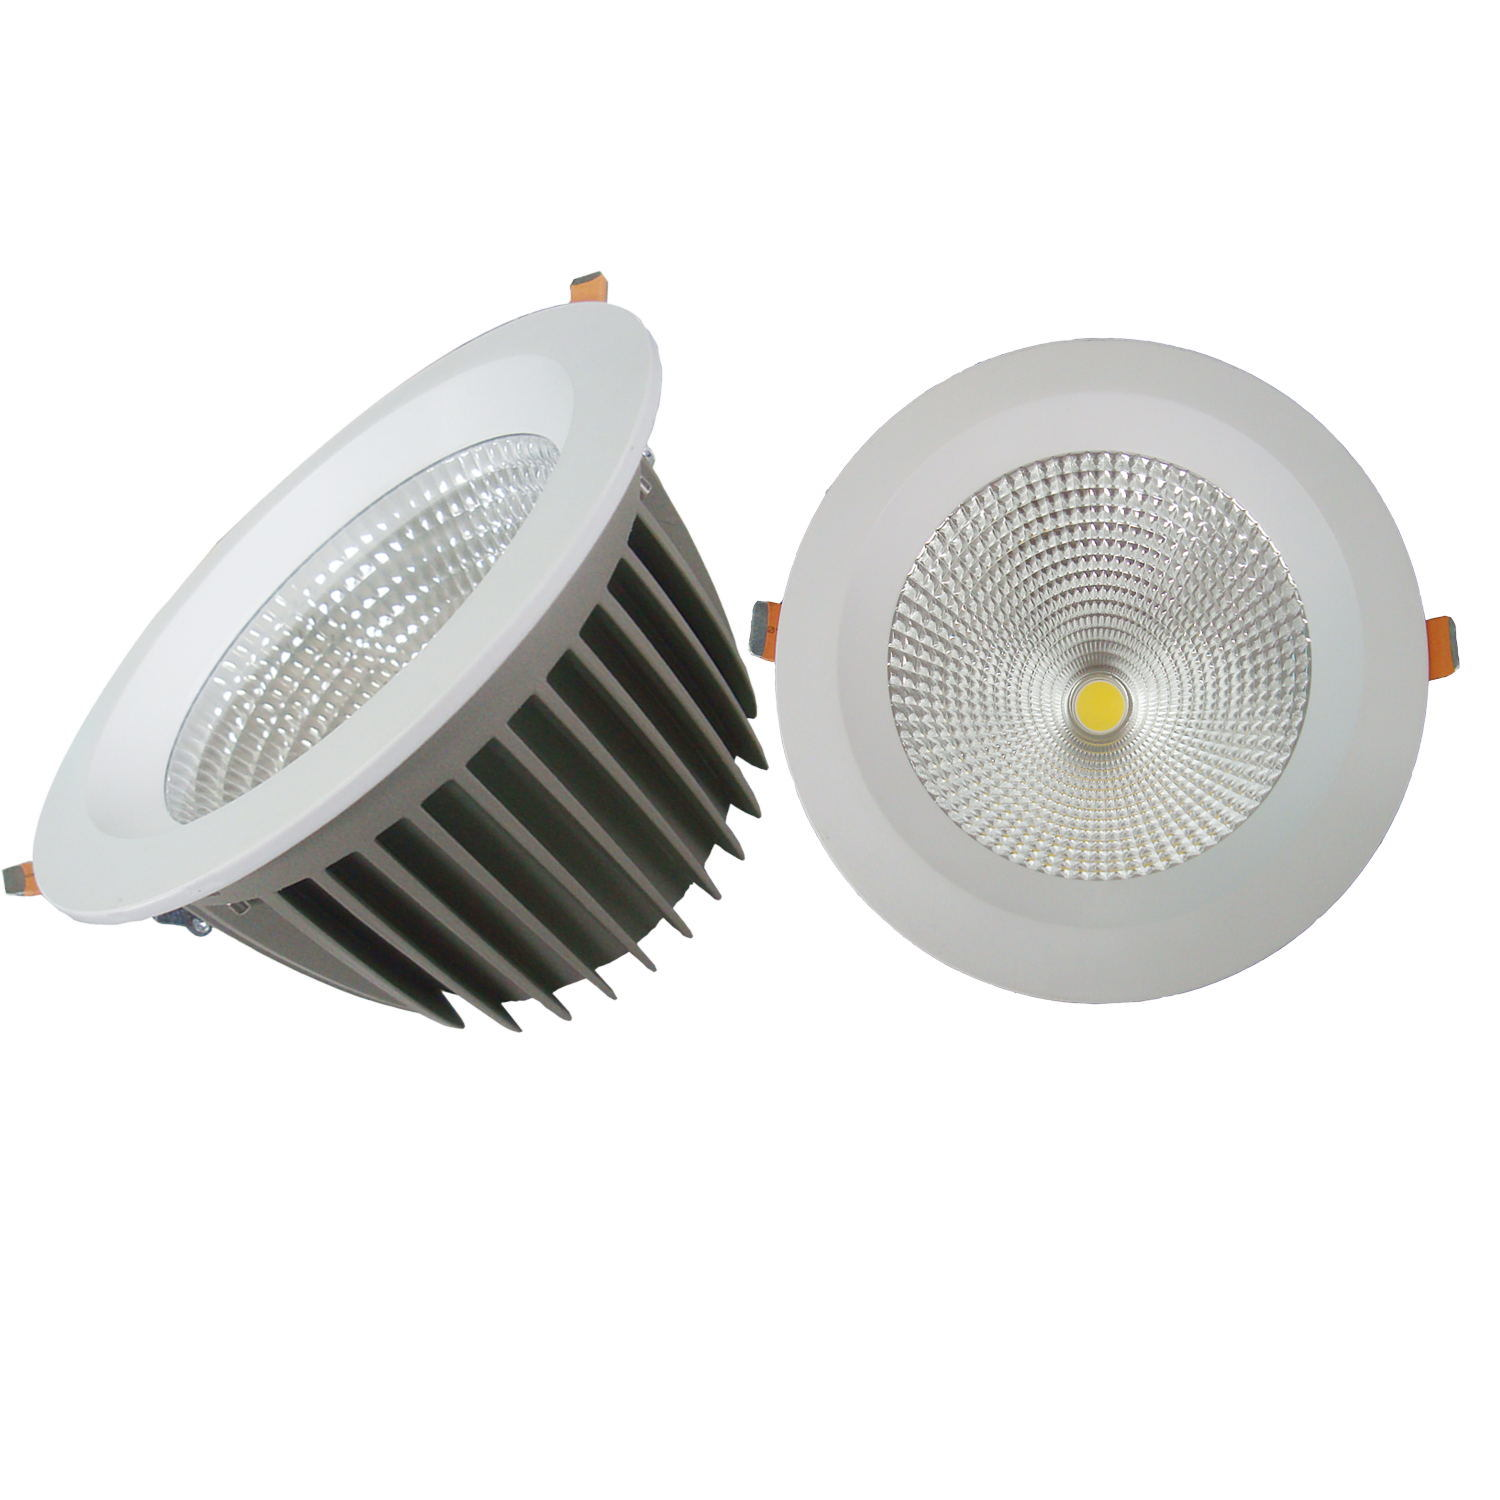 China surface mounted 40w cob led ceiling down light led downlight surface mounted 40w cob led ceiling down light led downlight aloadofball Image collections